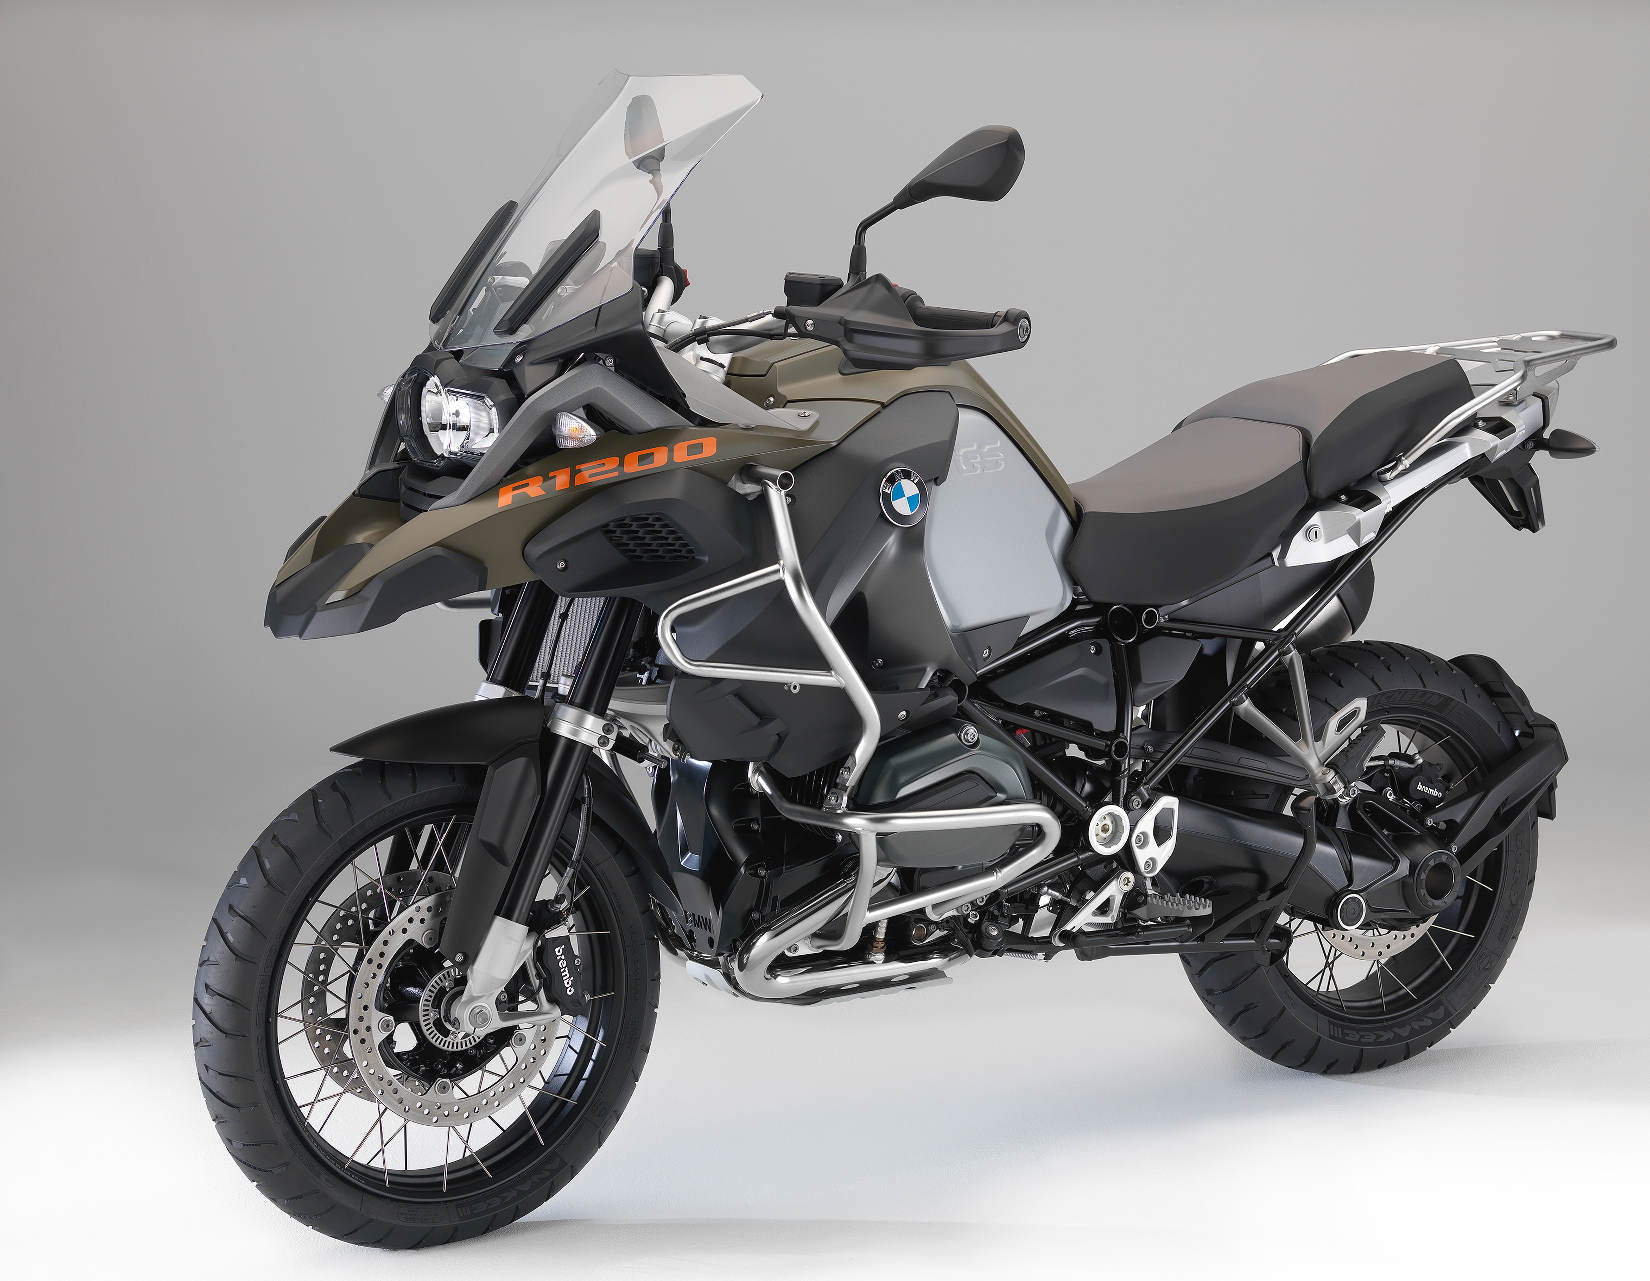 bmw r 1200 gs adventure specs 2015 2016 autoevolution. Black Bedroom Furniture Sets. Home Design Ideas